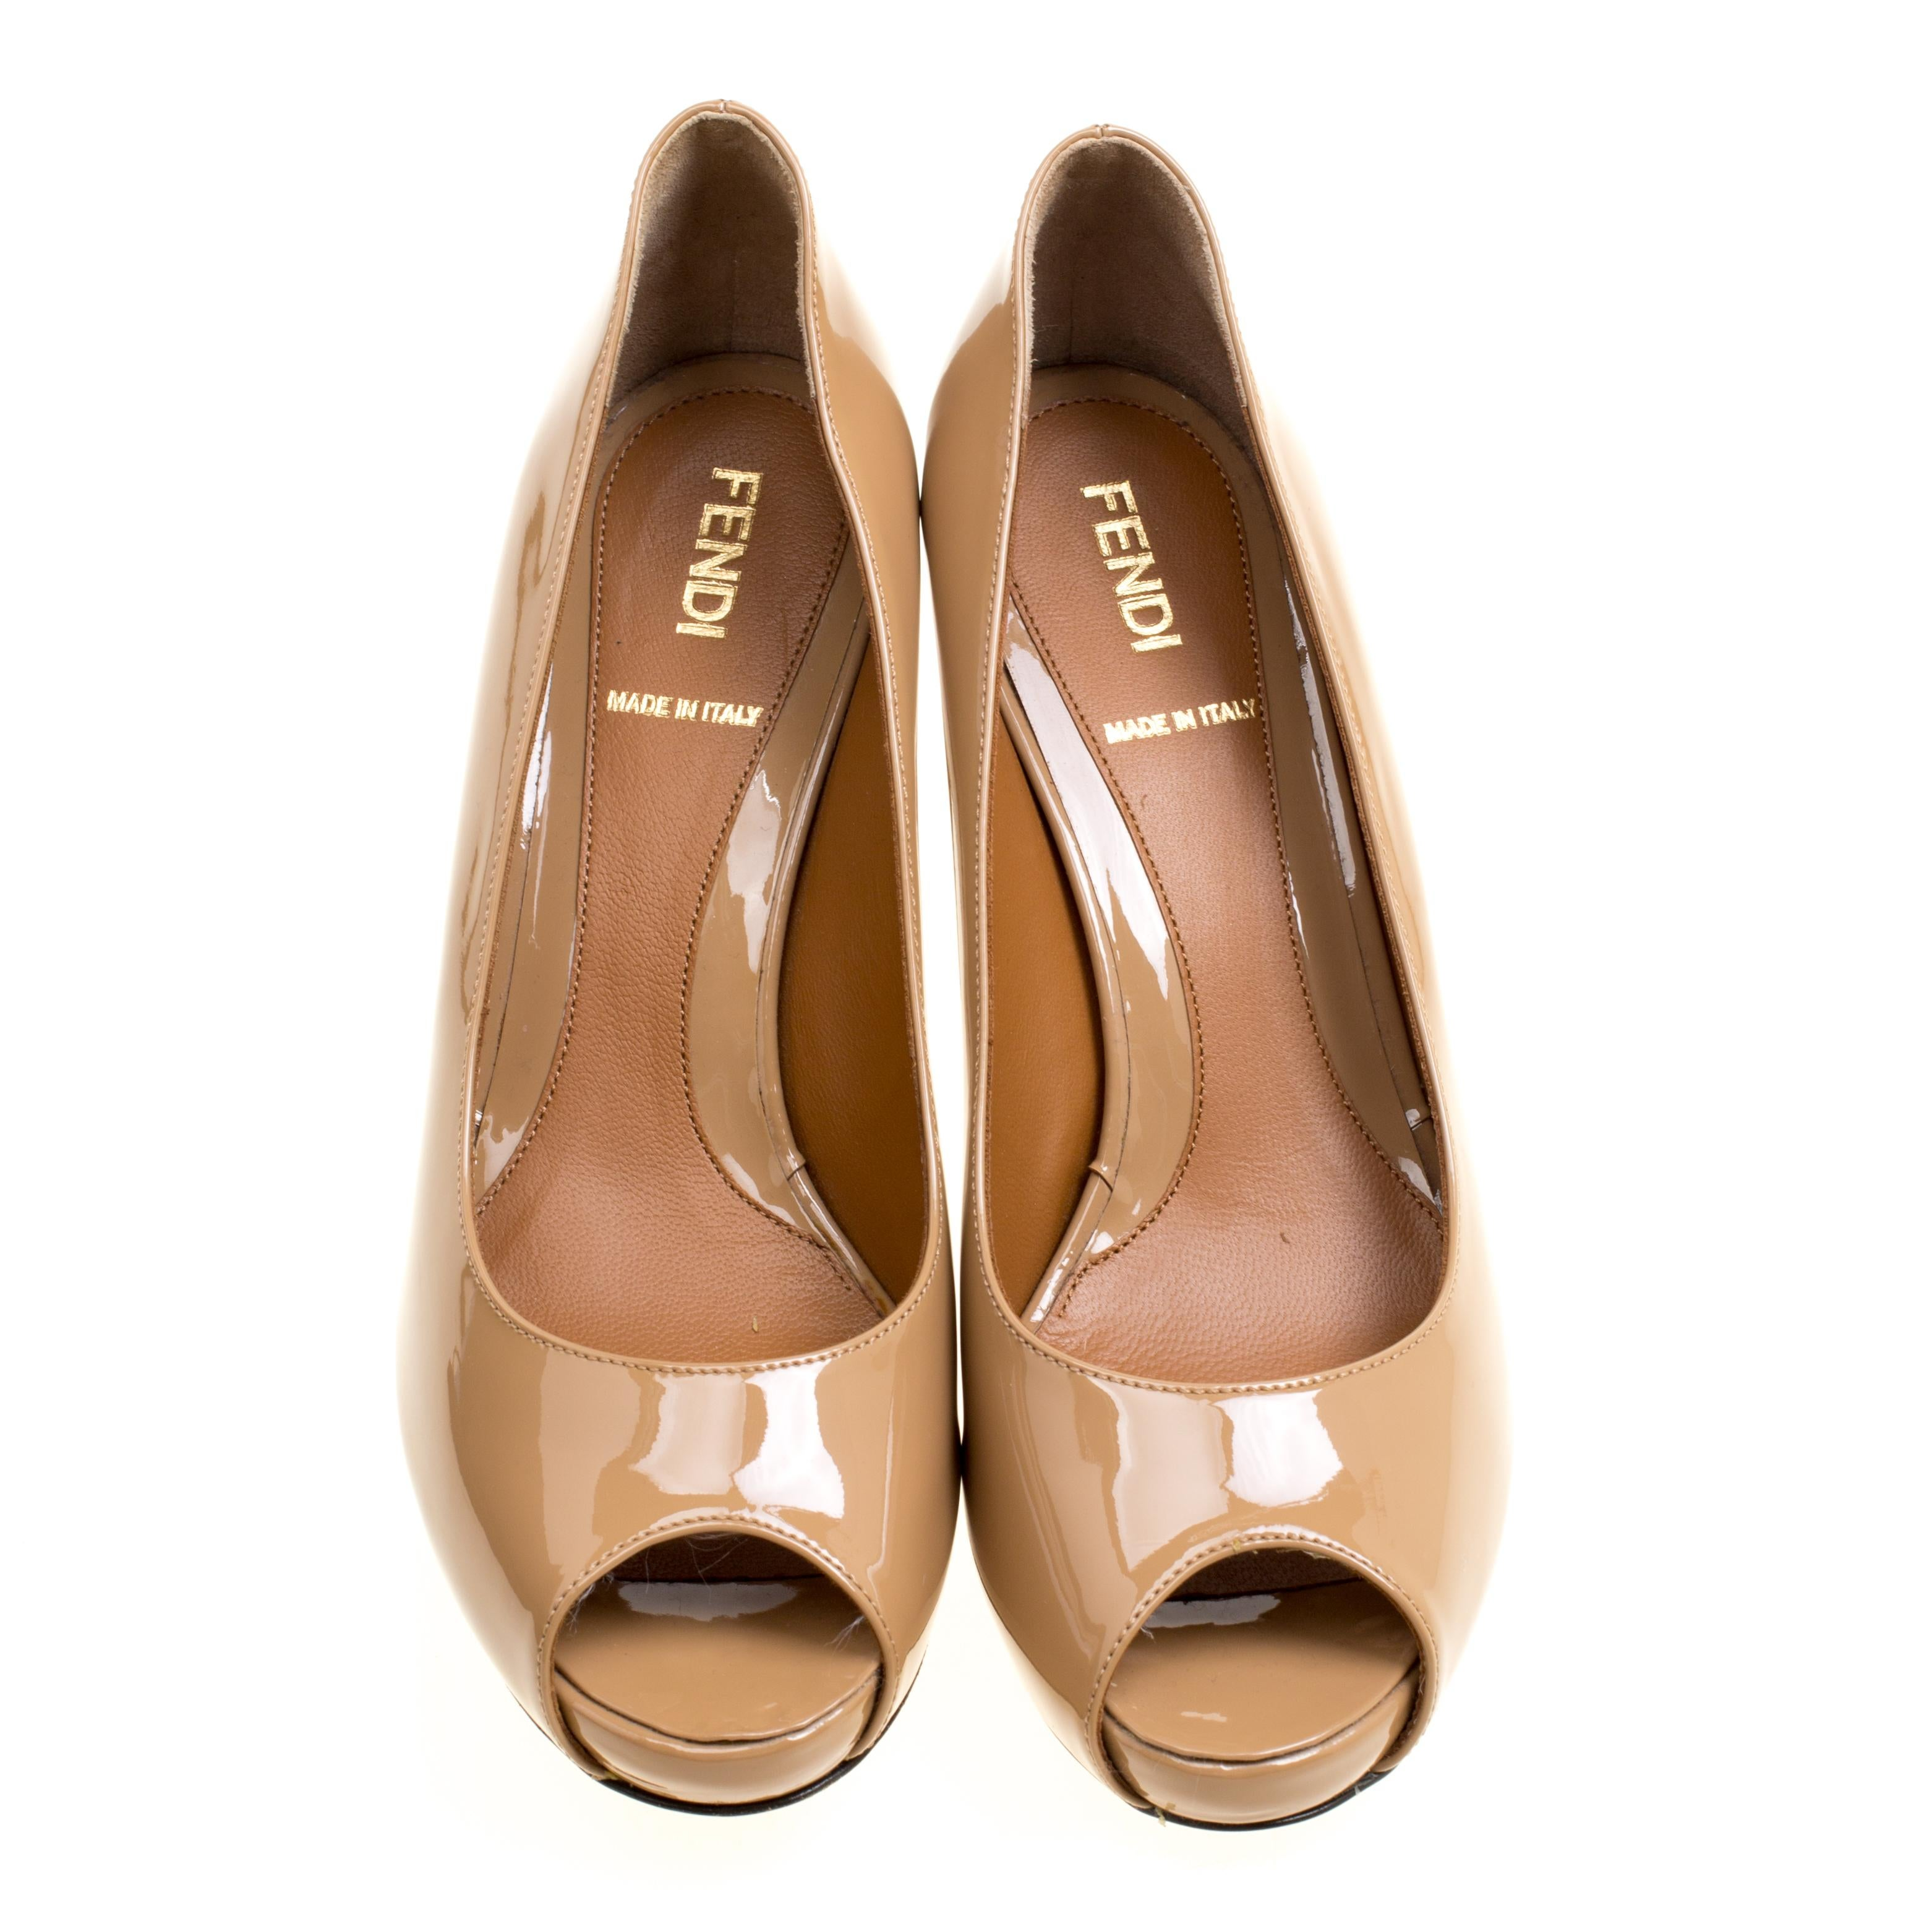 69f19bcb7cc Fendi Nude Patent Leather Zucchino Heel Peep Toe Platform Pumps Size 36 For  Sale at 1stdibs